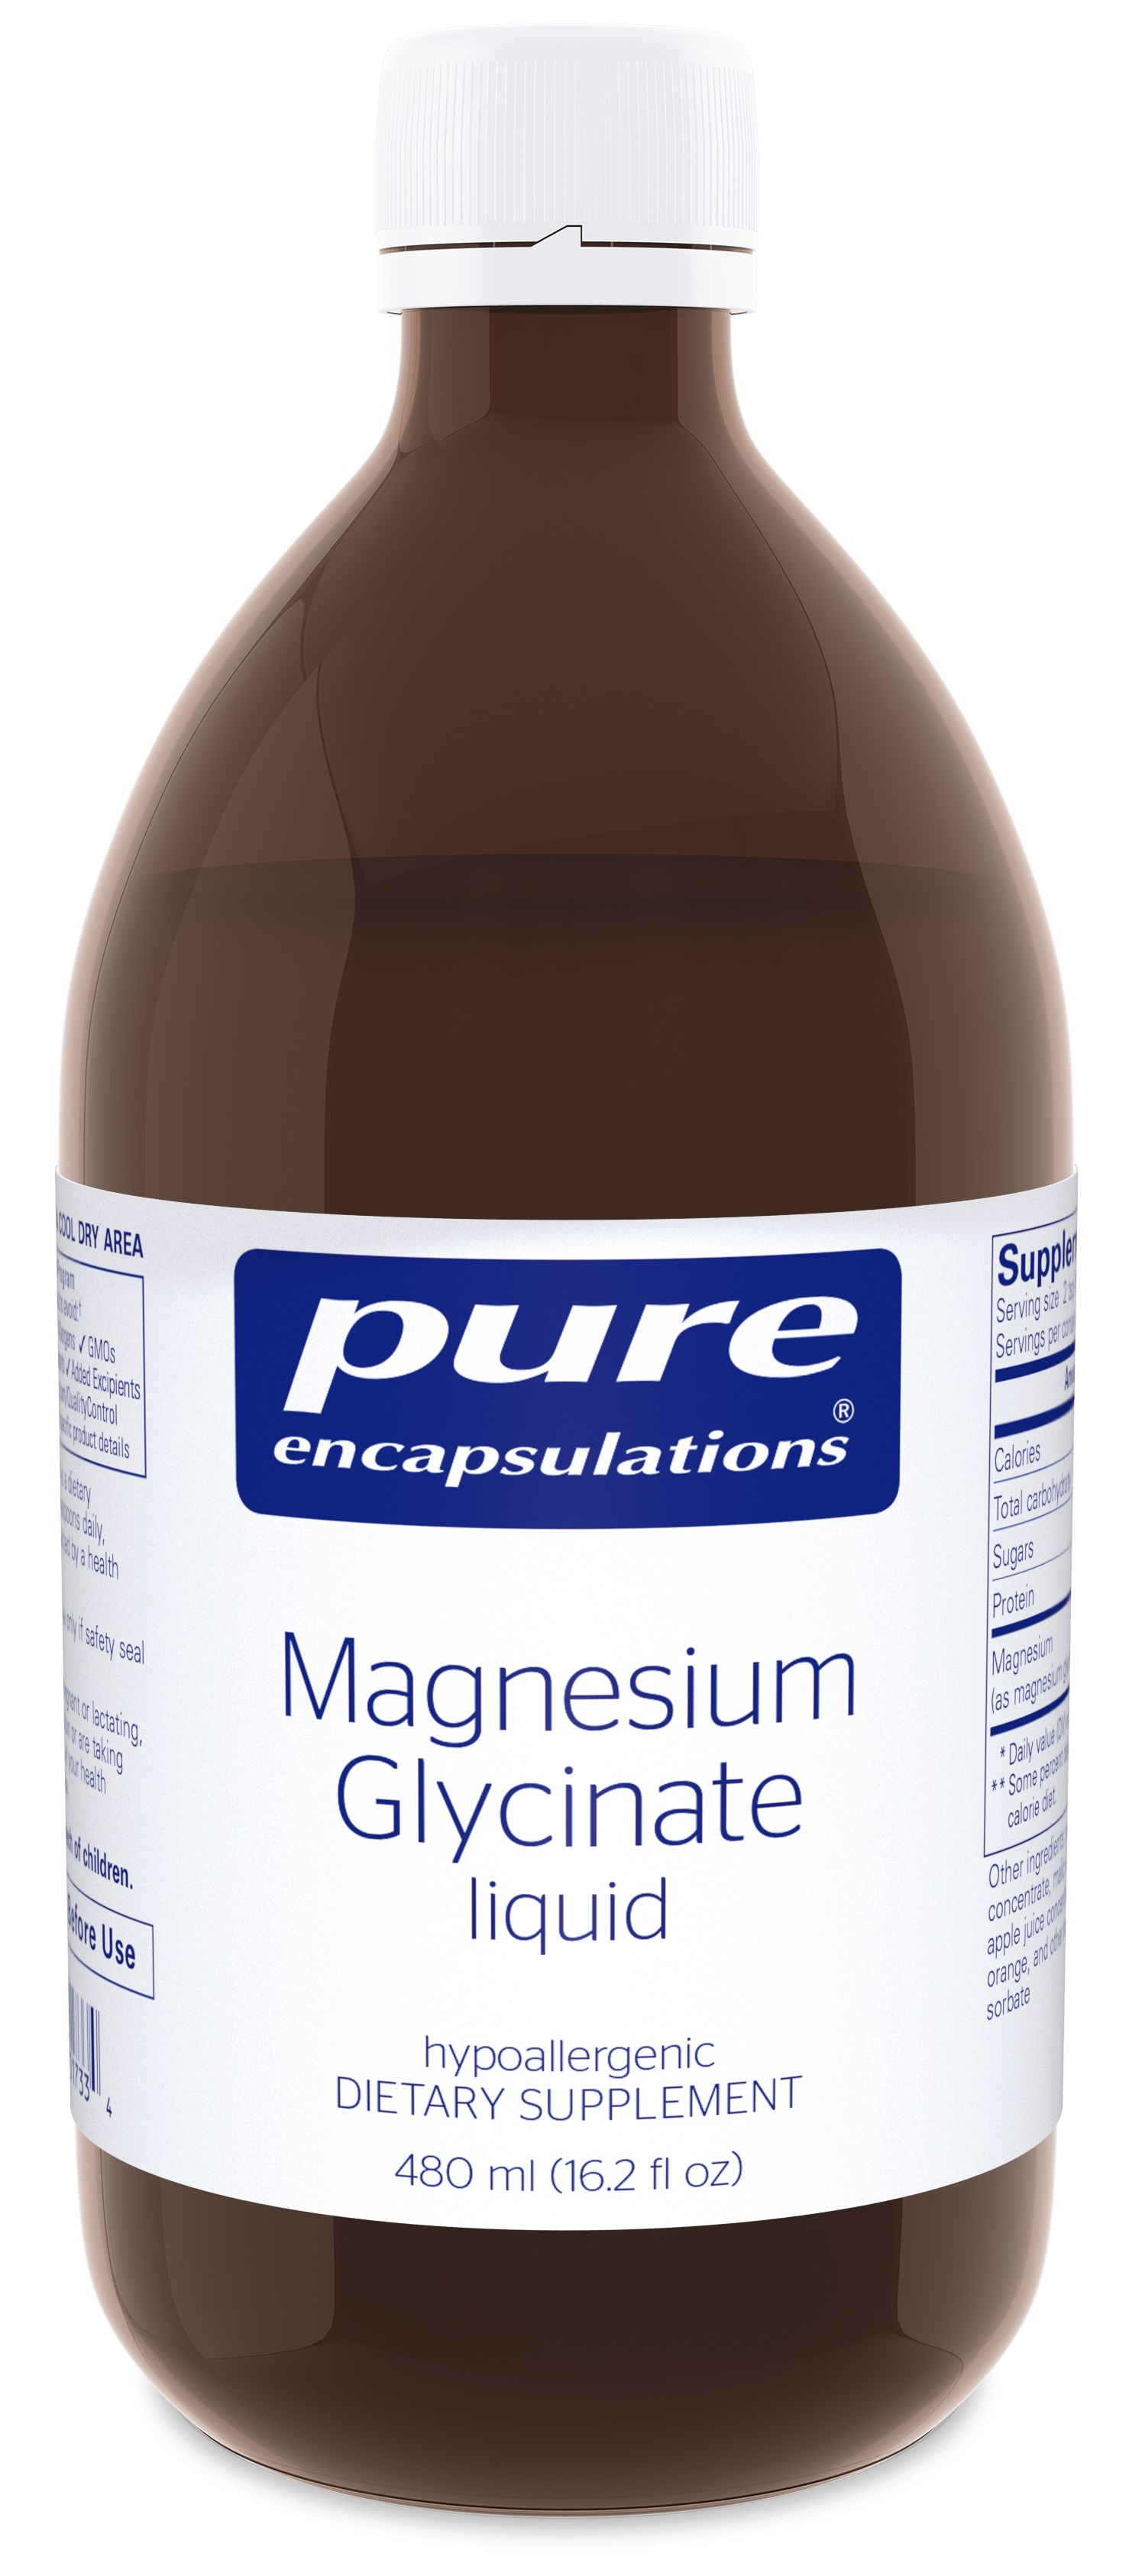 Pure Encapsulations Magnesium Glycinate Liquid